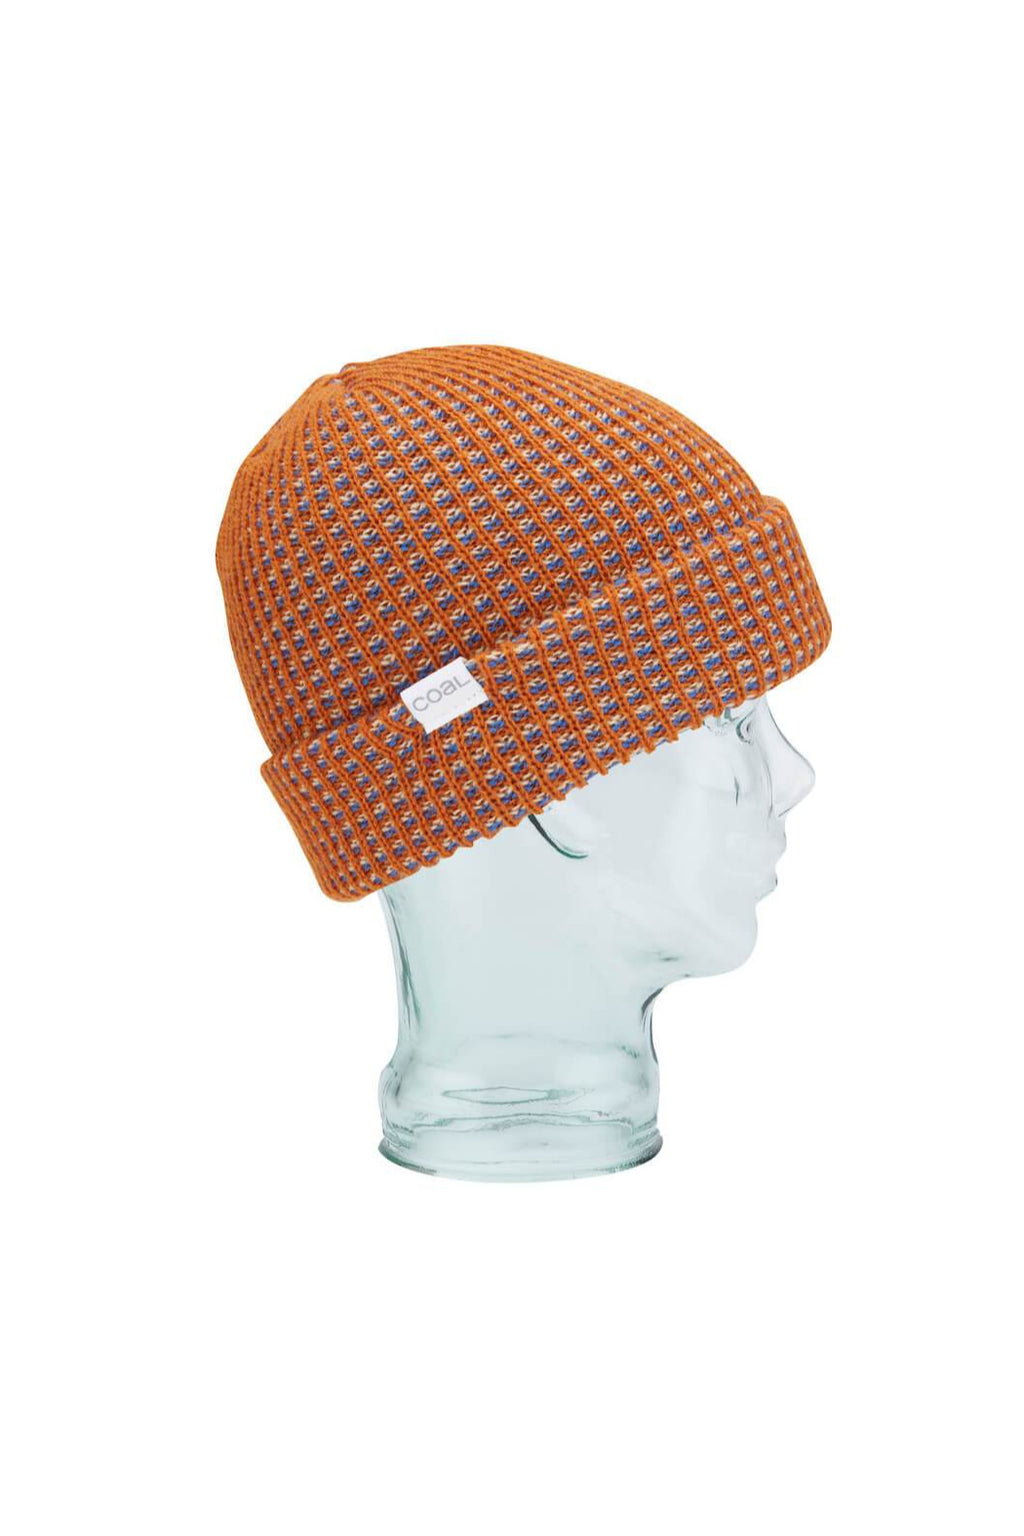 Coal Davey Beanie in Burnt Orange